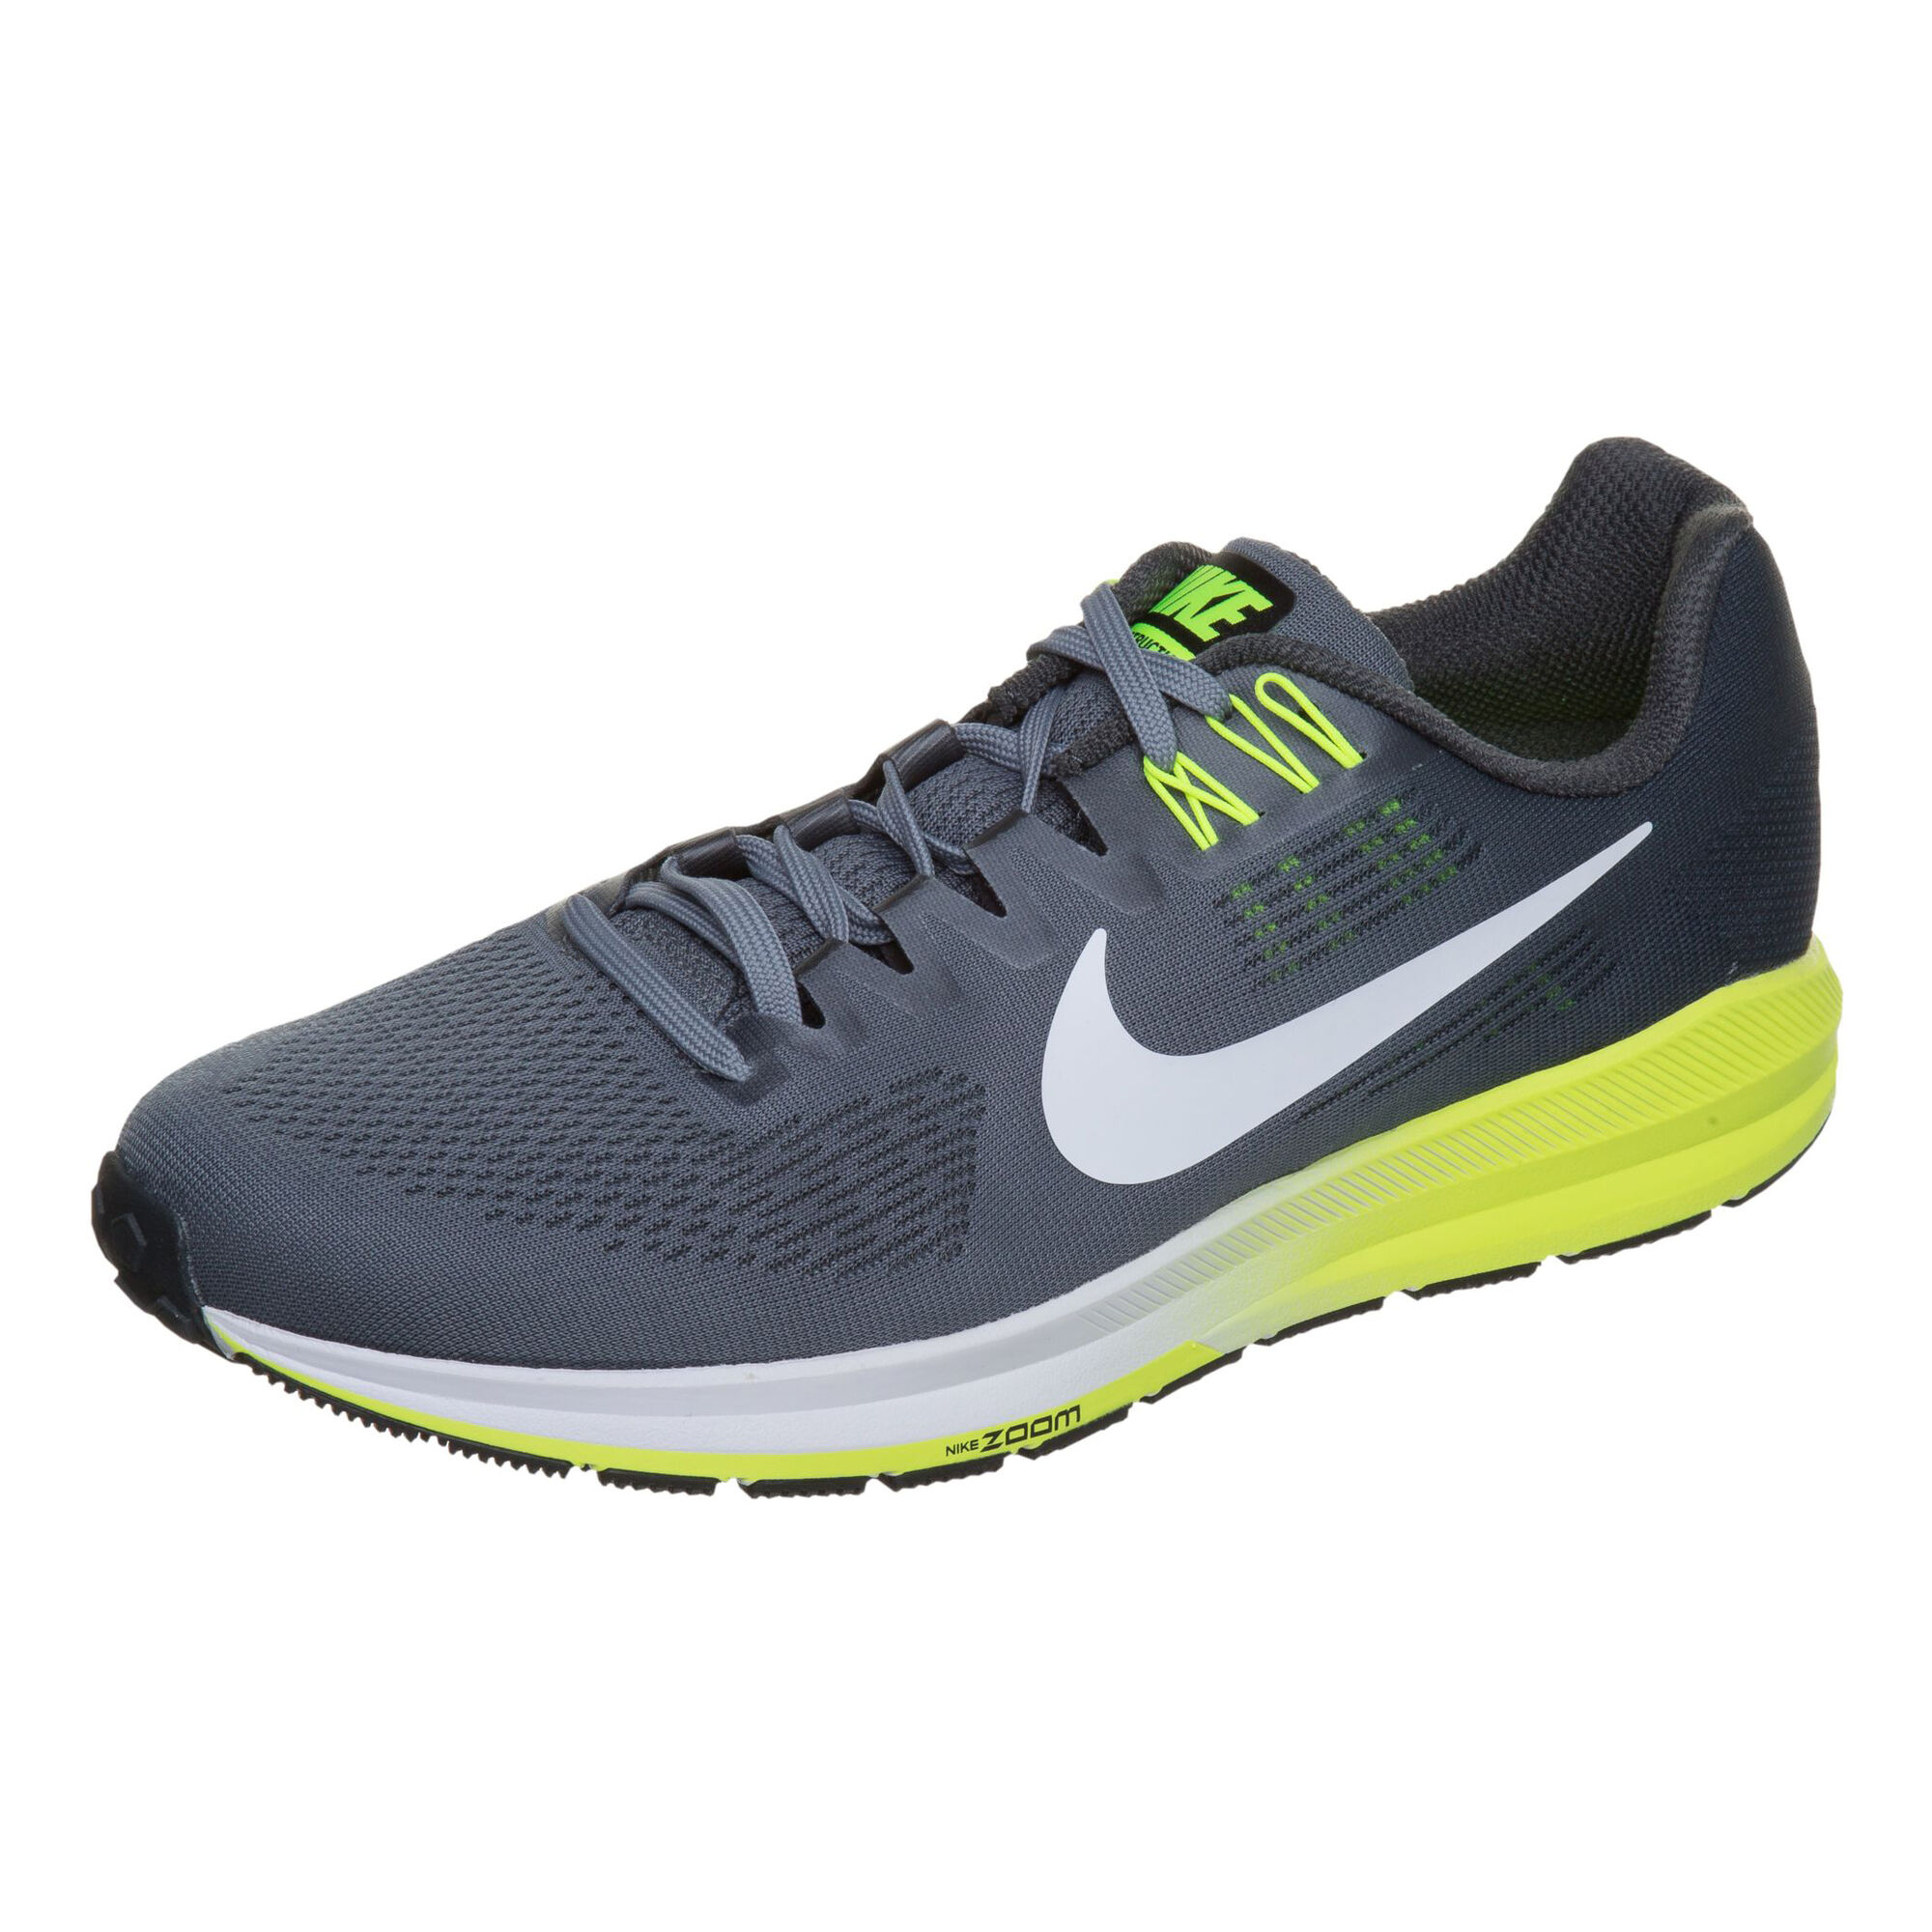 san francisco 74570 81186 buy Nike Air Zoom Structure 21 Stability Running Shoe Men ...